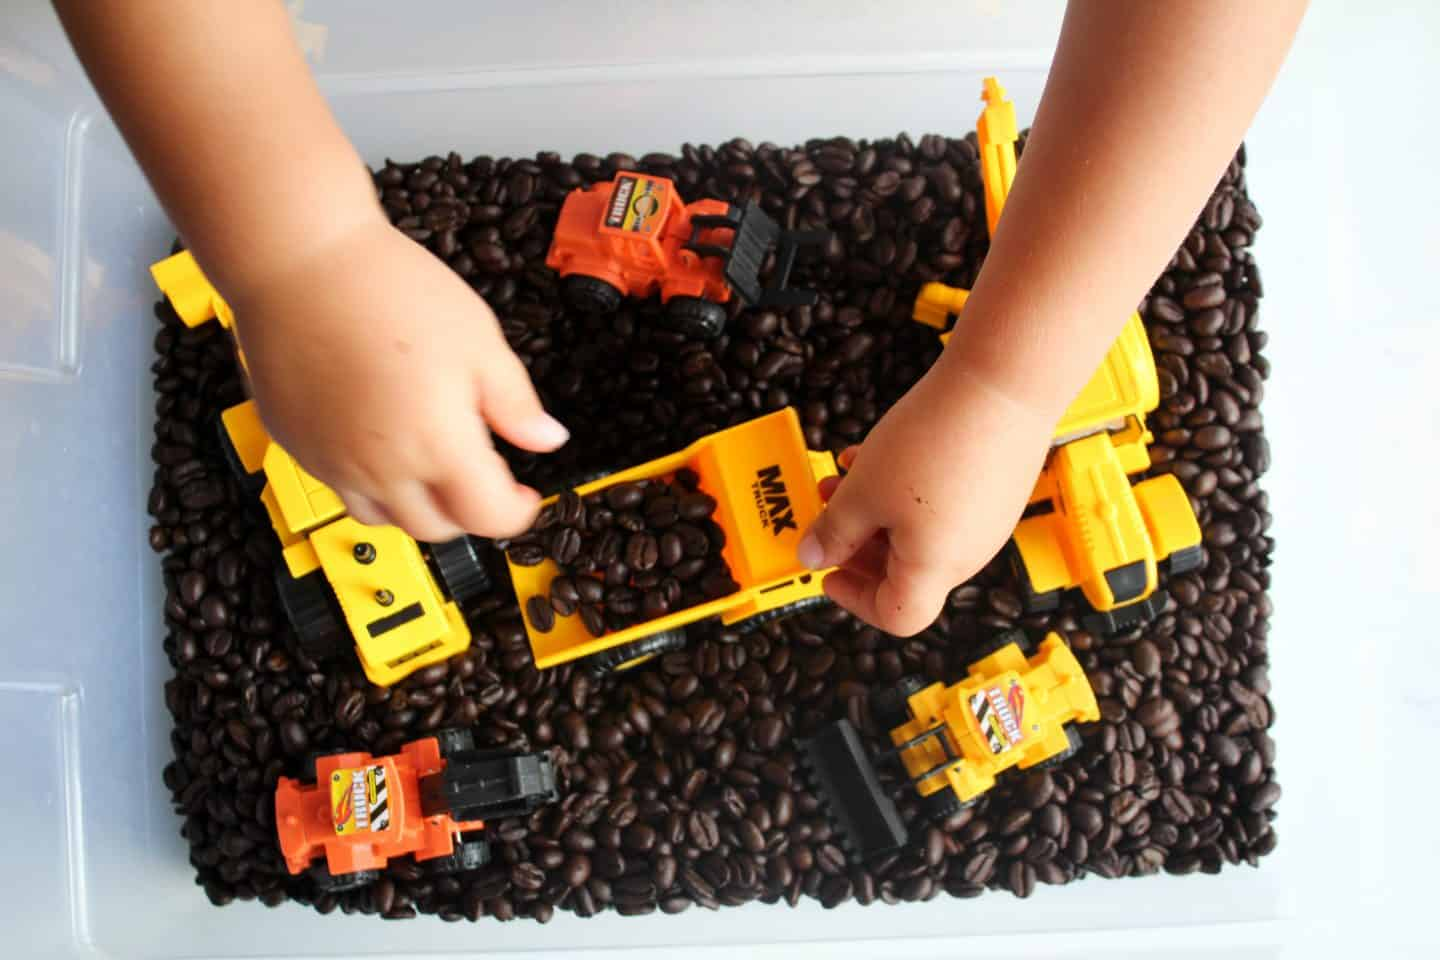 Coffee bean sensory bin, using coffee beans as the base of the sensory bin and adding in construction trucks and equipment #sensorybin #sensorybox #sensoryplayfortoddlers #sensoryideas